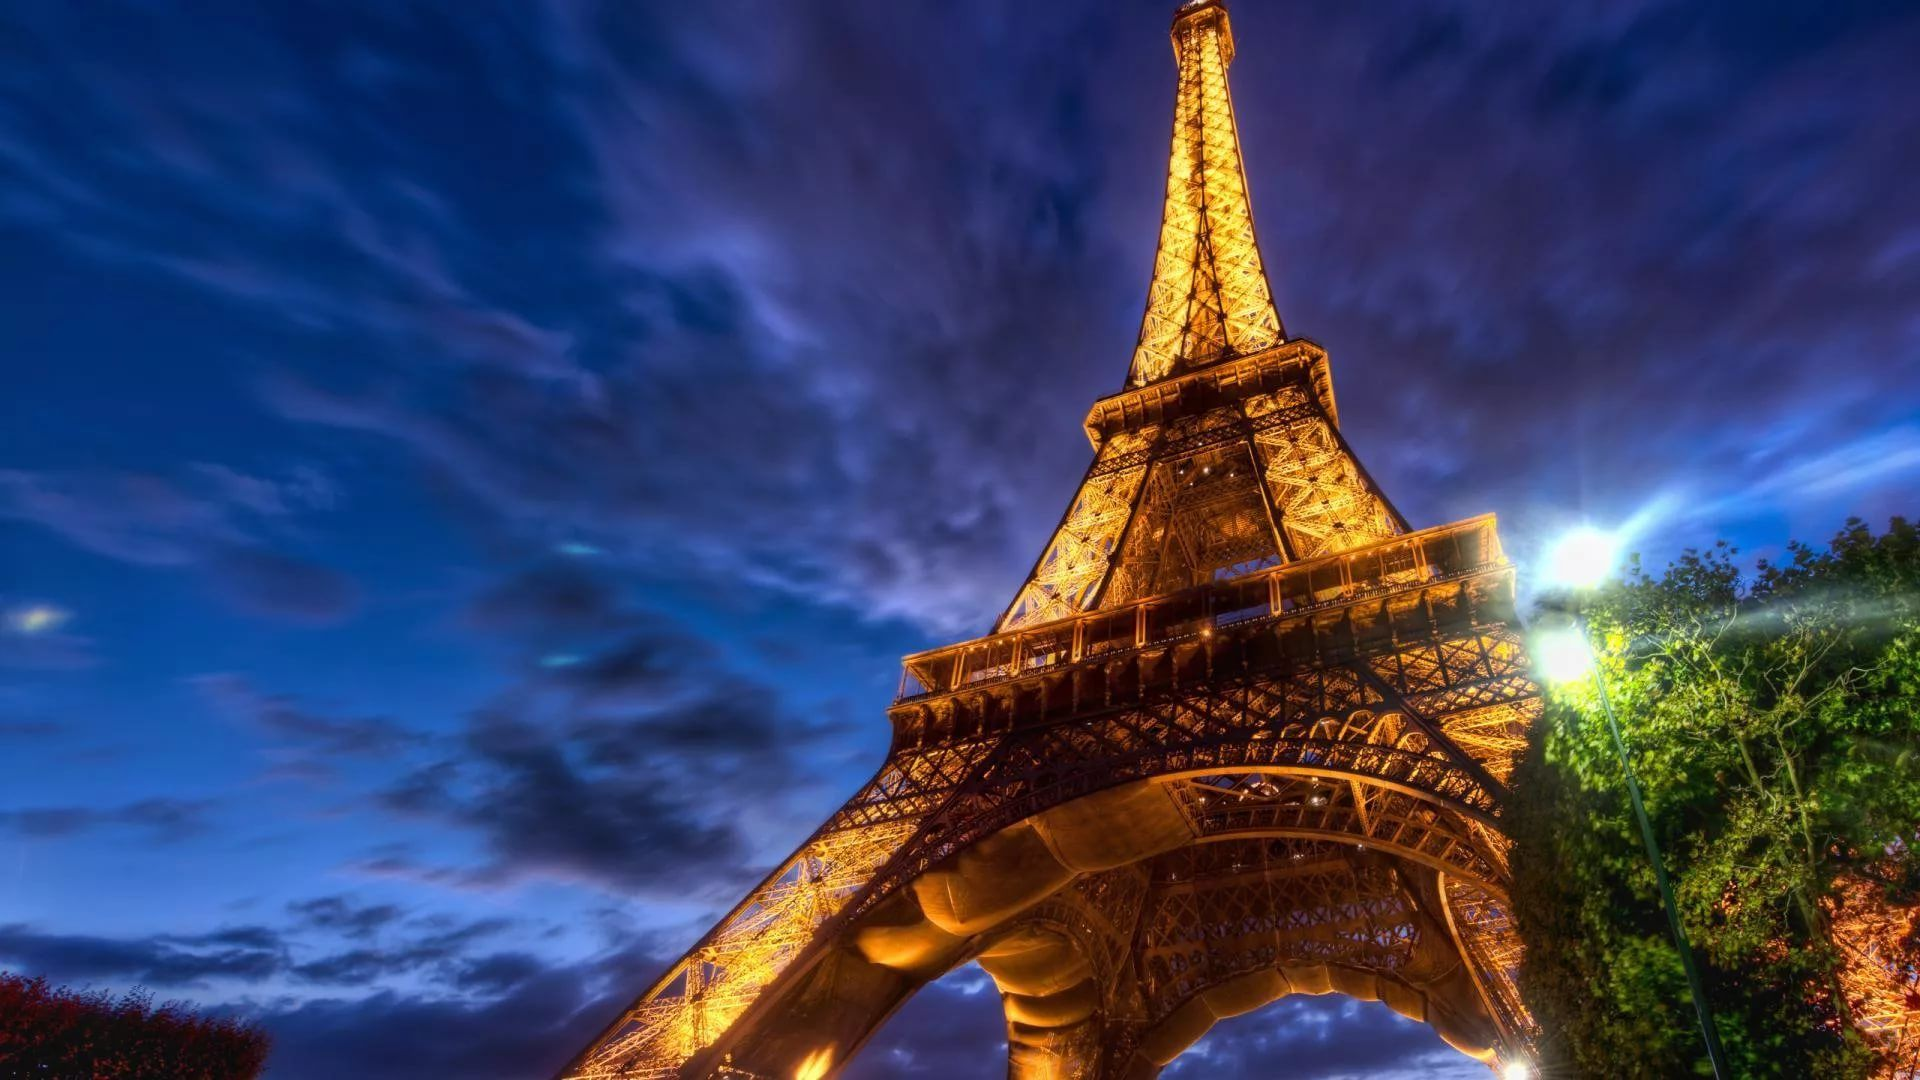 Cute Paris desktop wallpaper